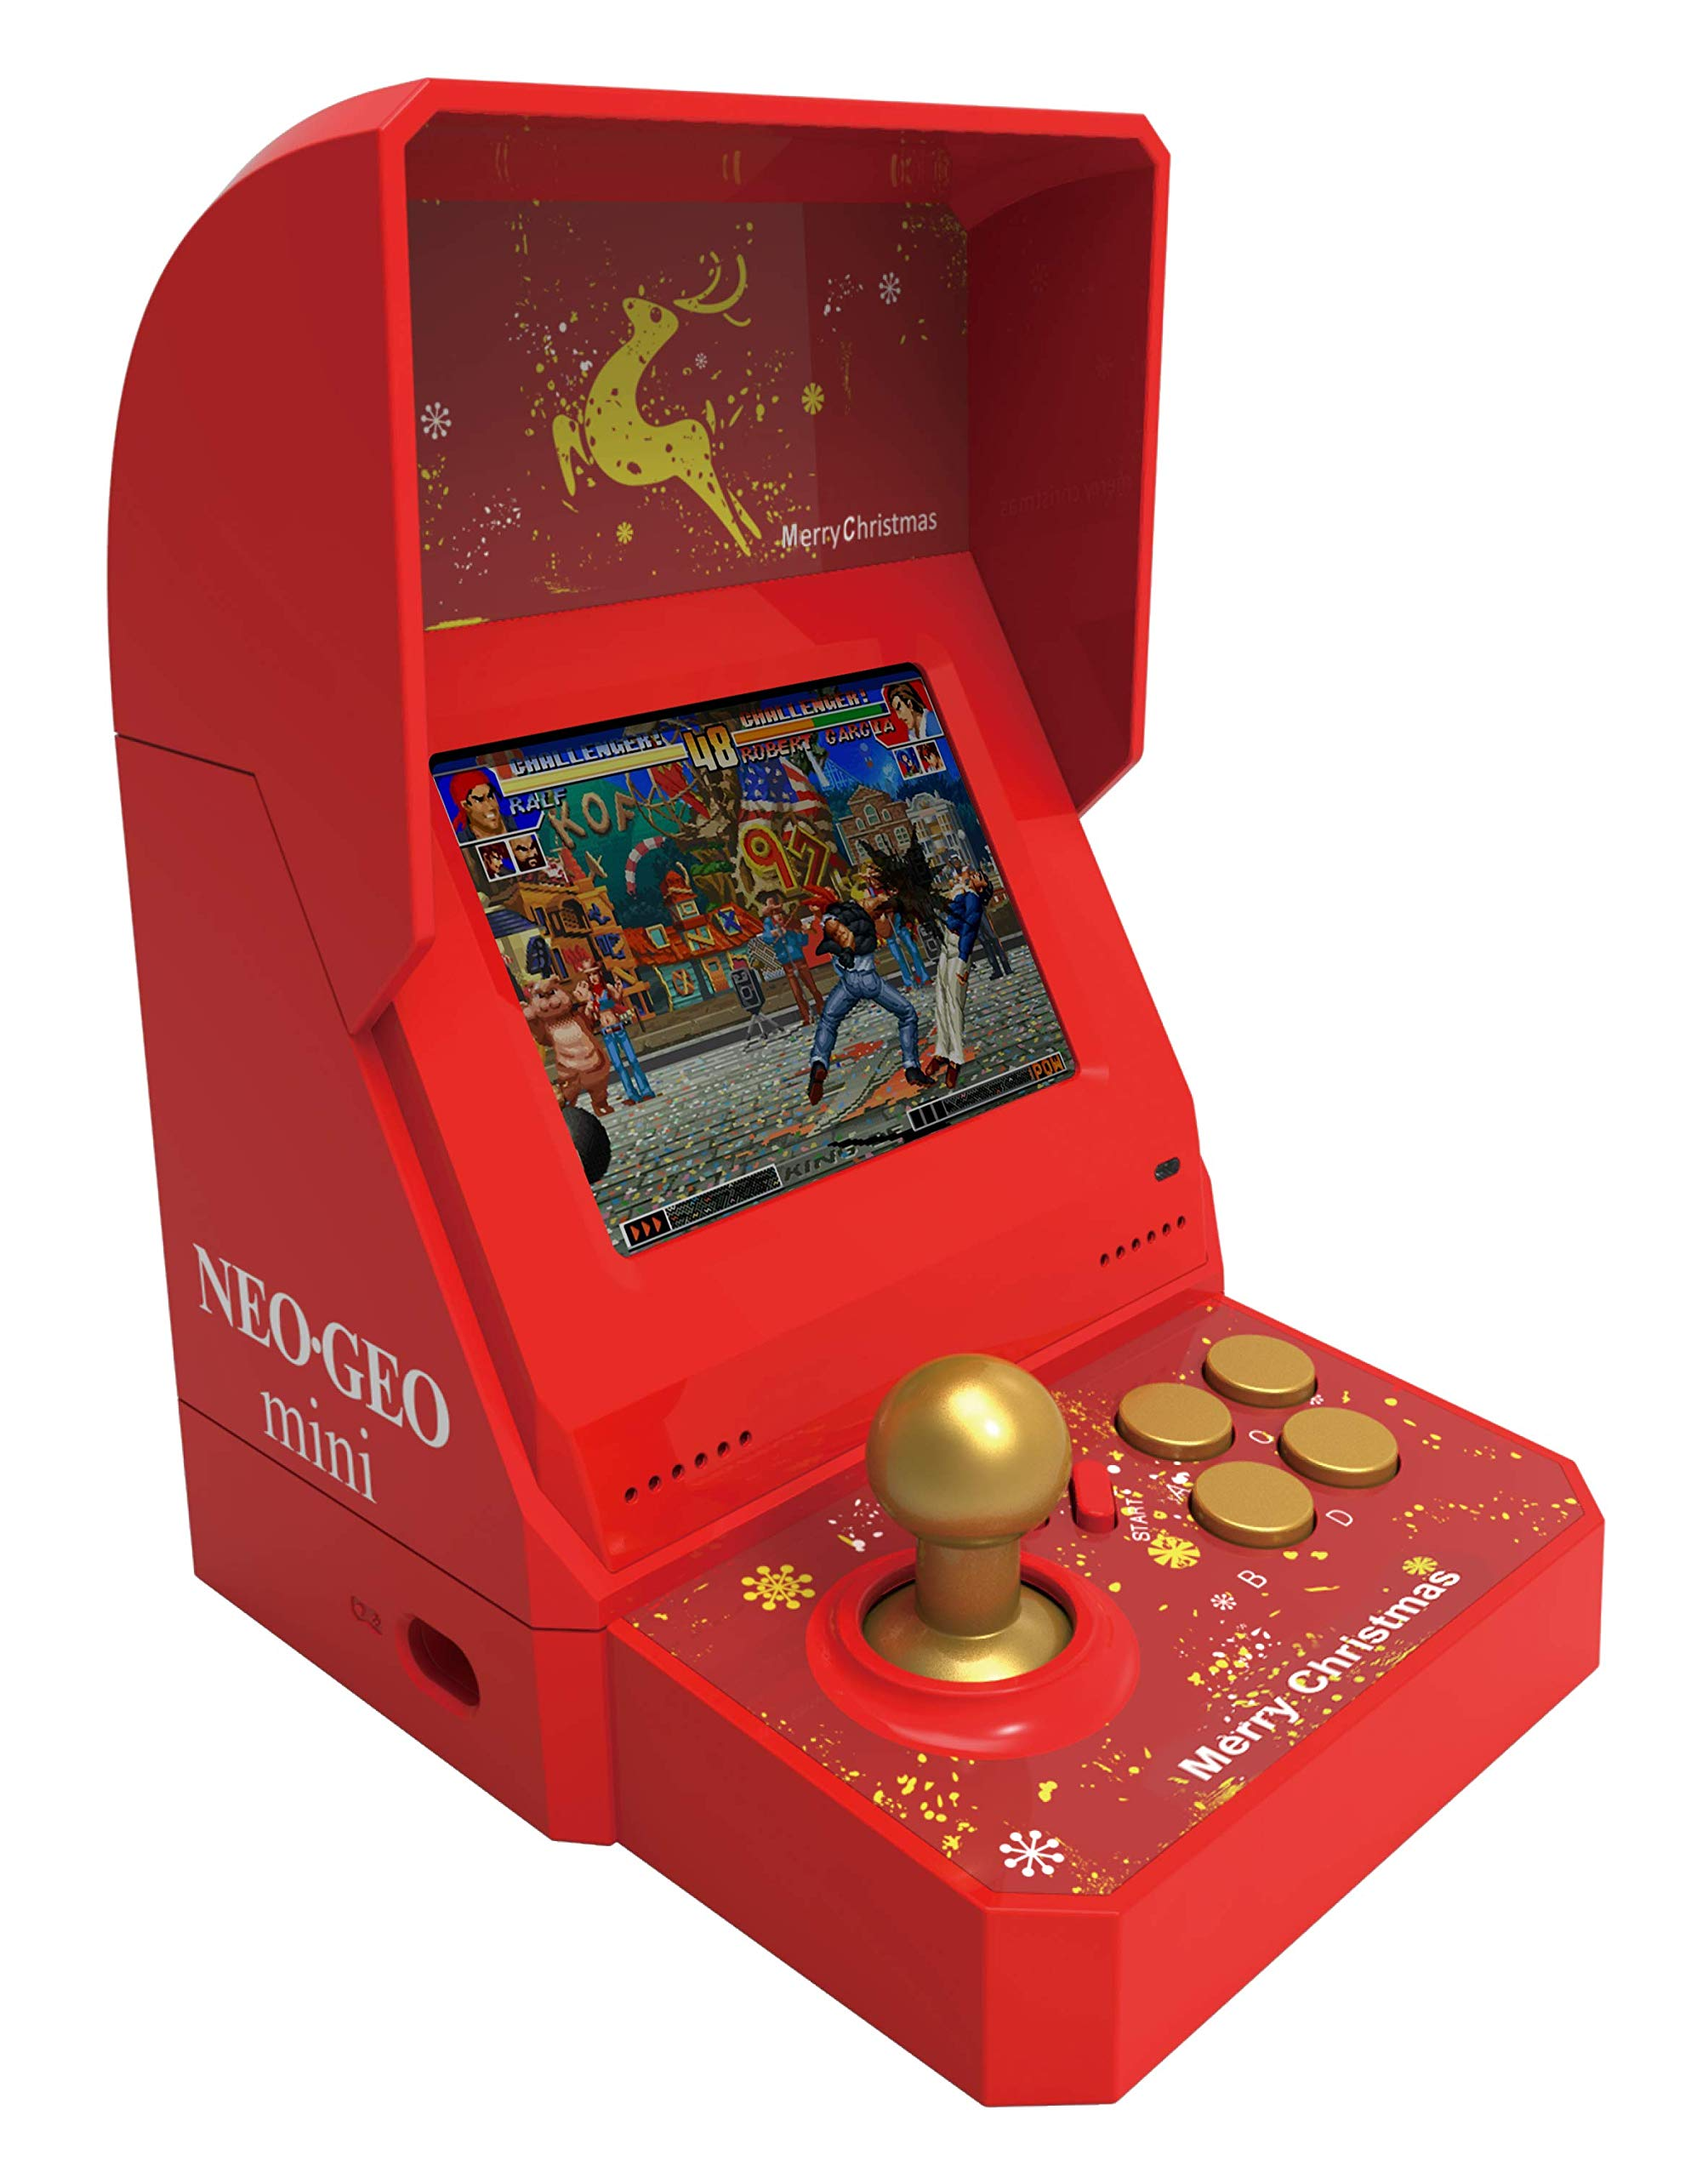 NEOGEO mini Christmas Limited Edition *(IN STOCK NOW! Ships USPS Priority Mail)* by SNK (Image #6)